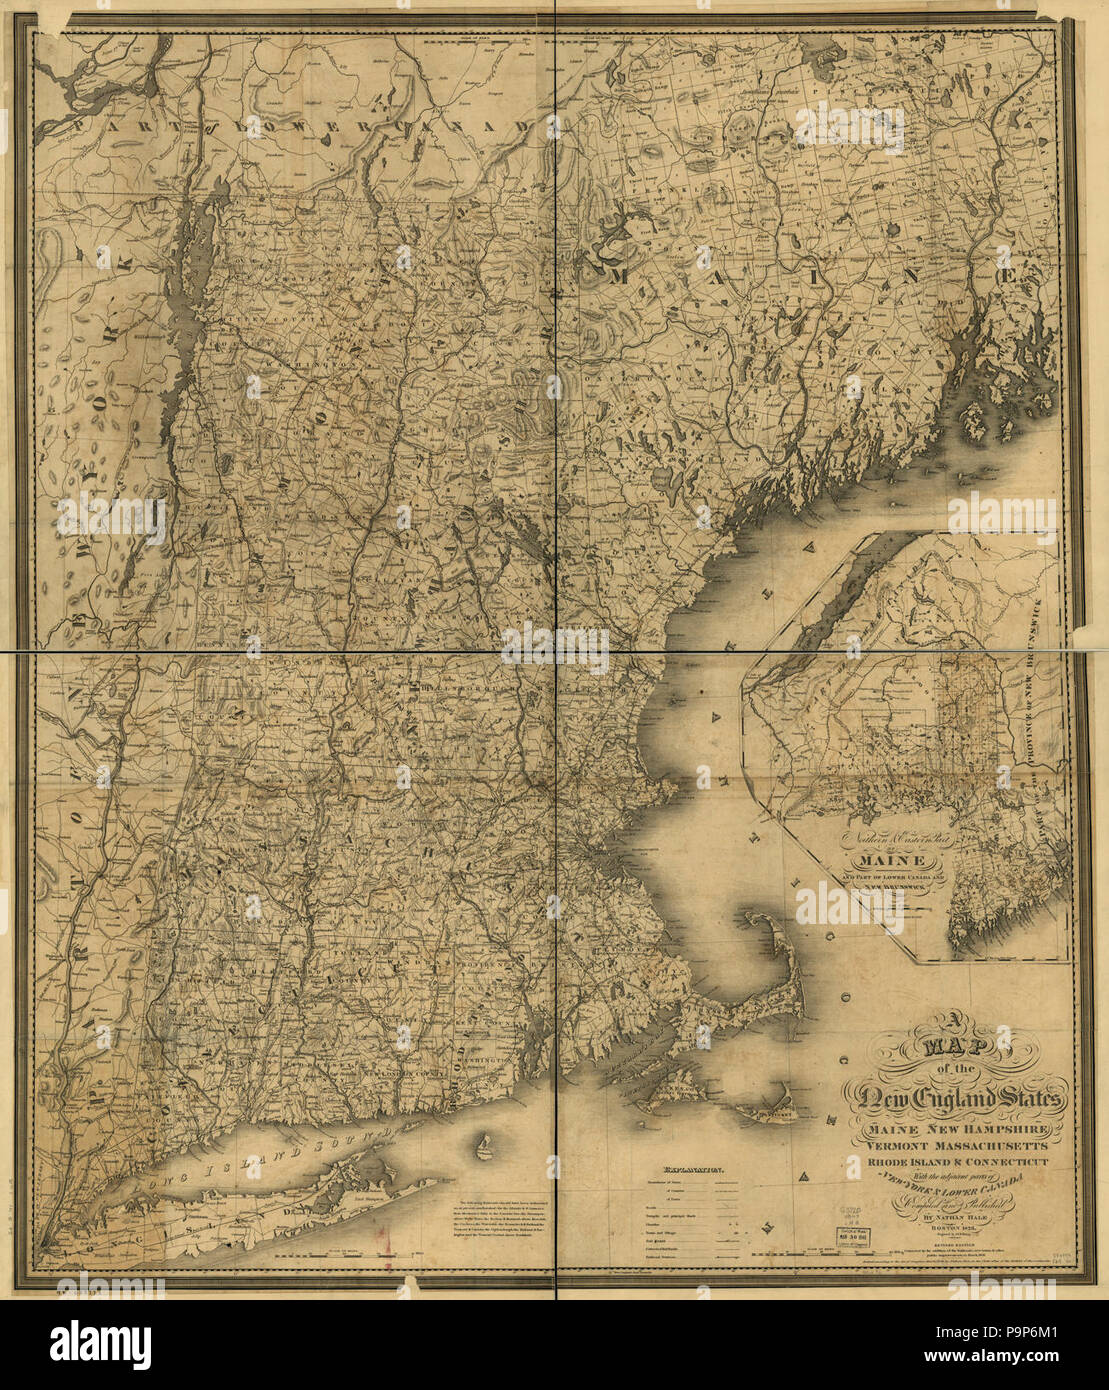 A map of the New England states, Maine, New Hampshire, Vermont ...